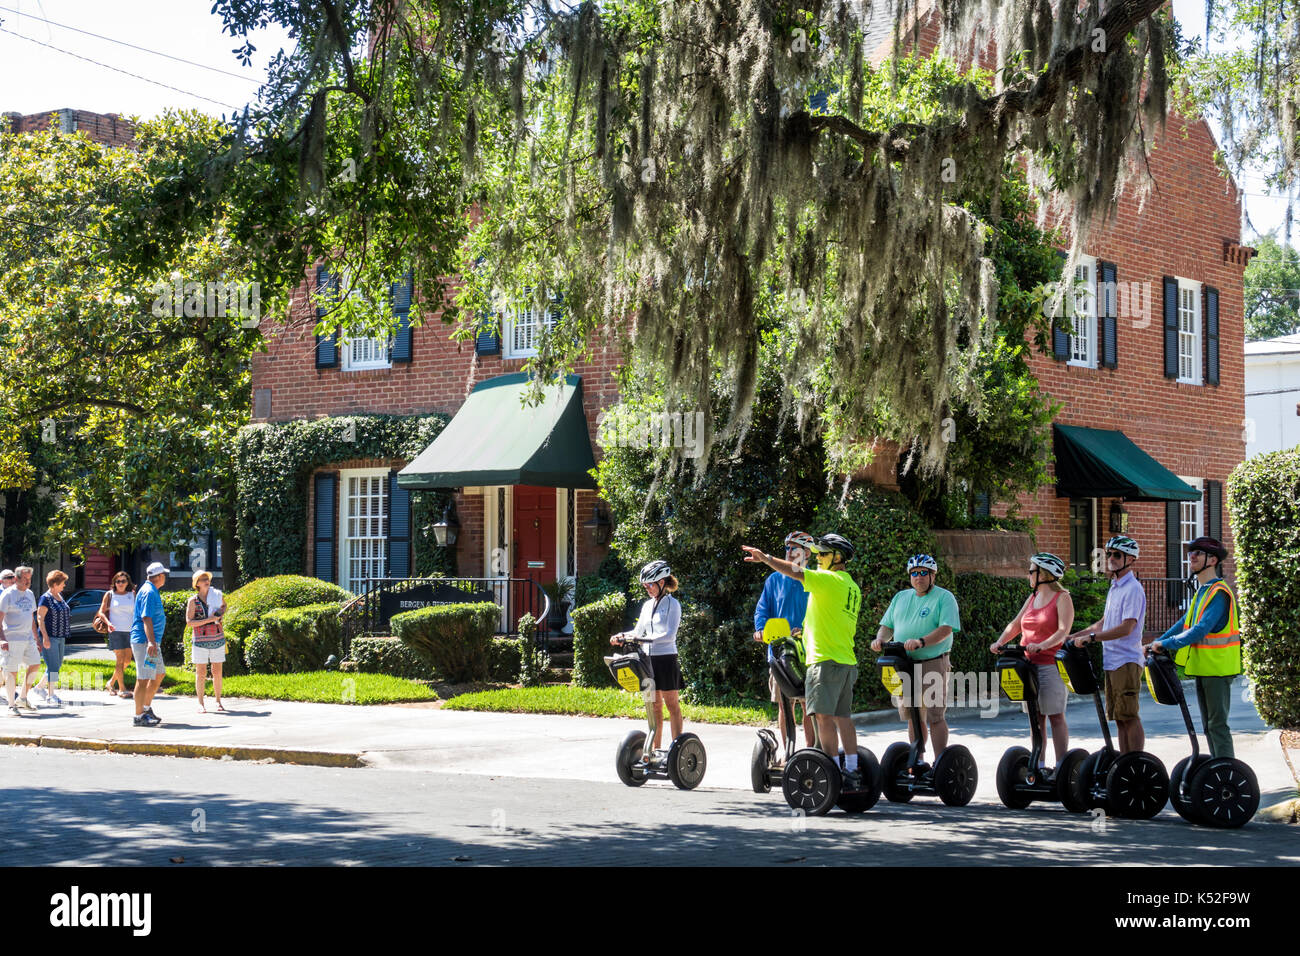 Savannah Georgia historic district Lafayette Square Segway guided tour - Stock Image